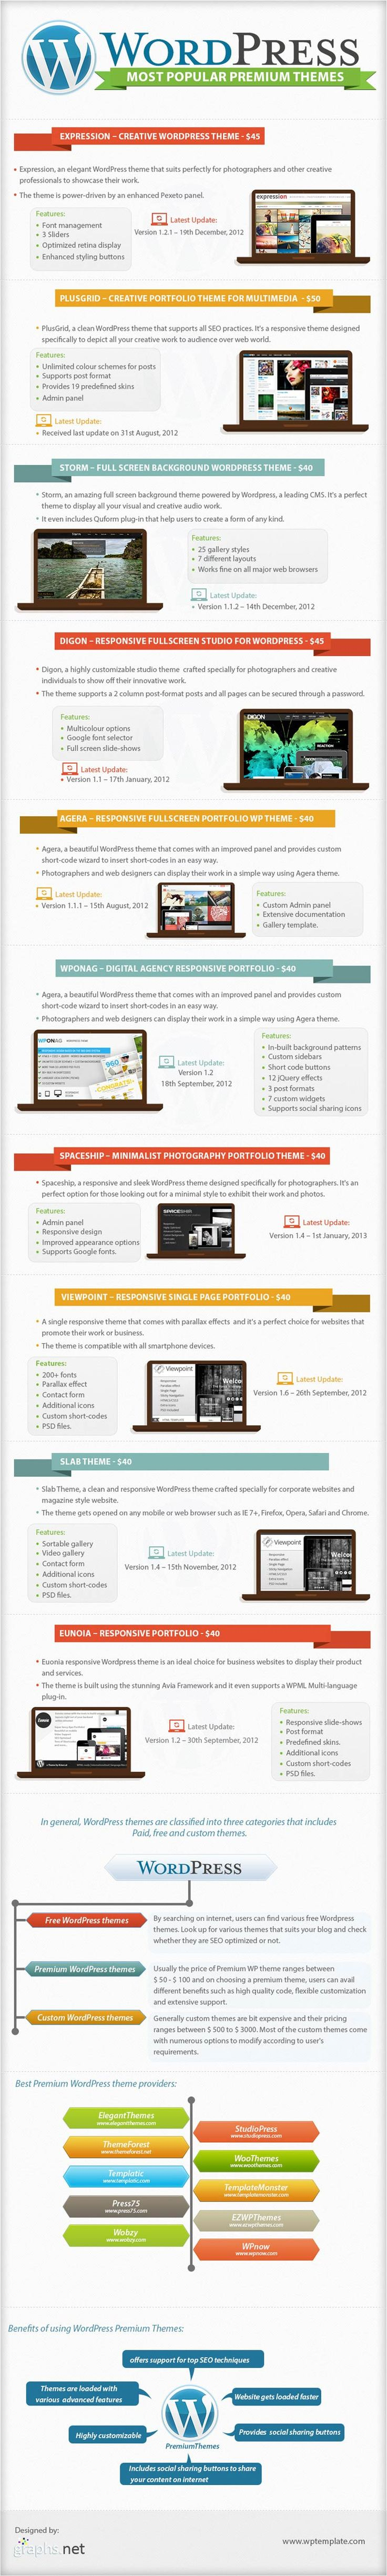 Most Popular WordPress Premium Themes, an infographic - http://hosting.ber-art.nl/most-popular-wordpress-premium-themes-an-infographic/ /@Roberta Causarano Causarano Cruz Malonda|Art Visual Design V.O.F. - #SEO